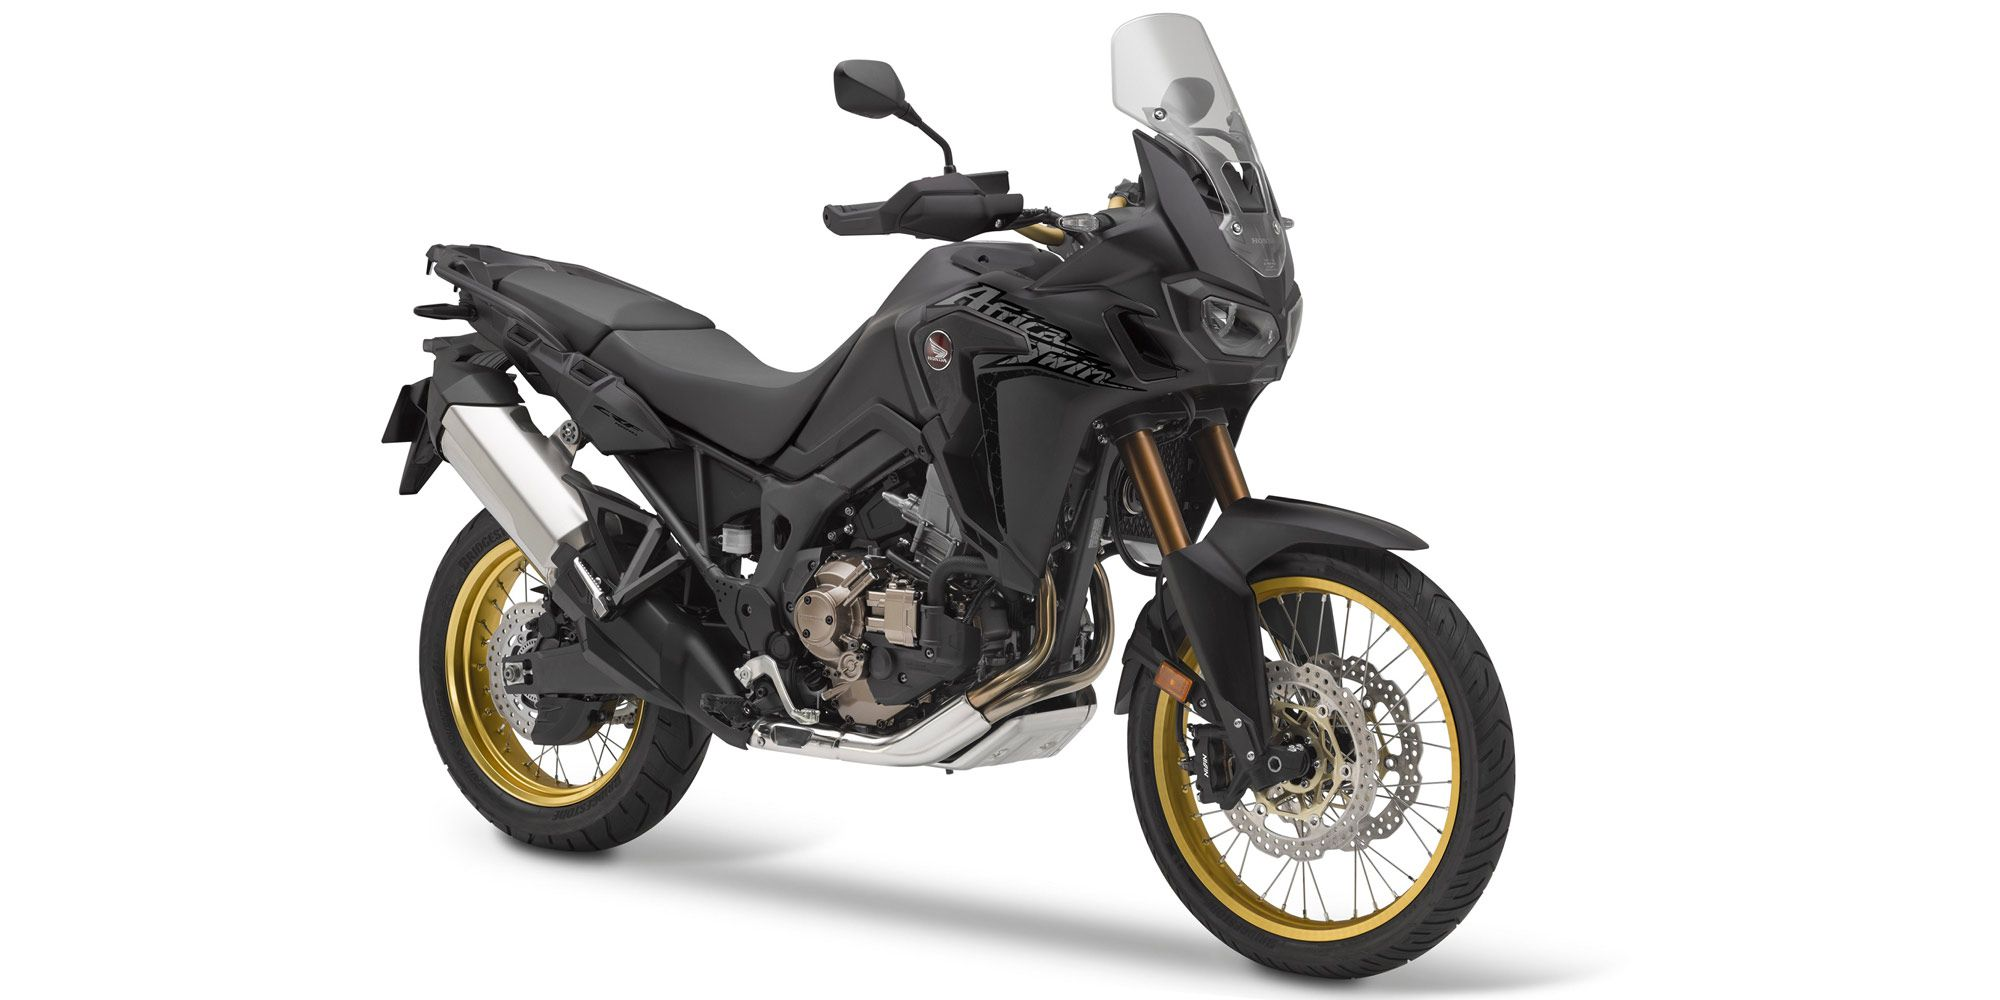 Top automatic motorcycles you can buy in 2019 cycle world